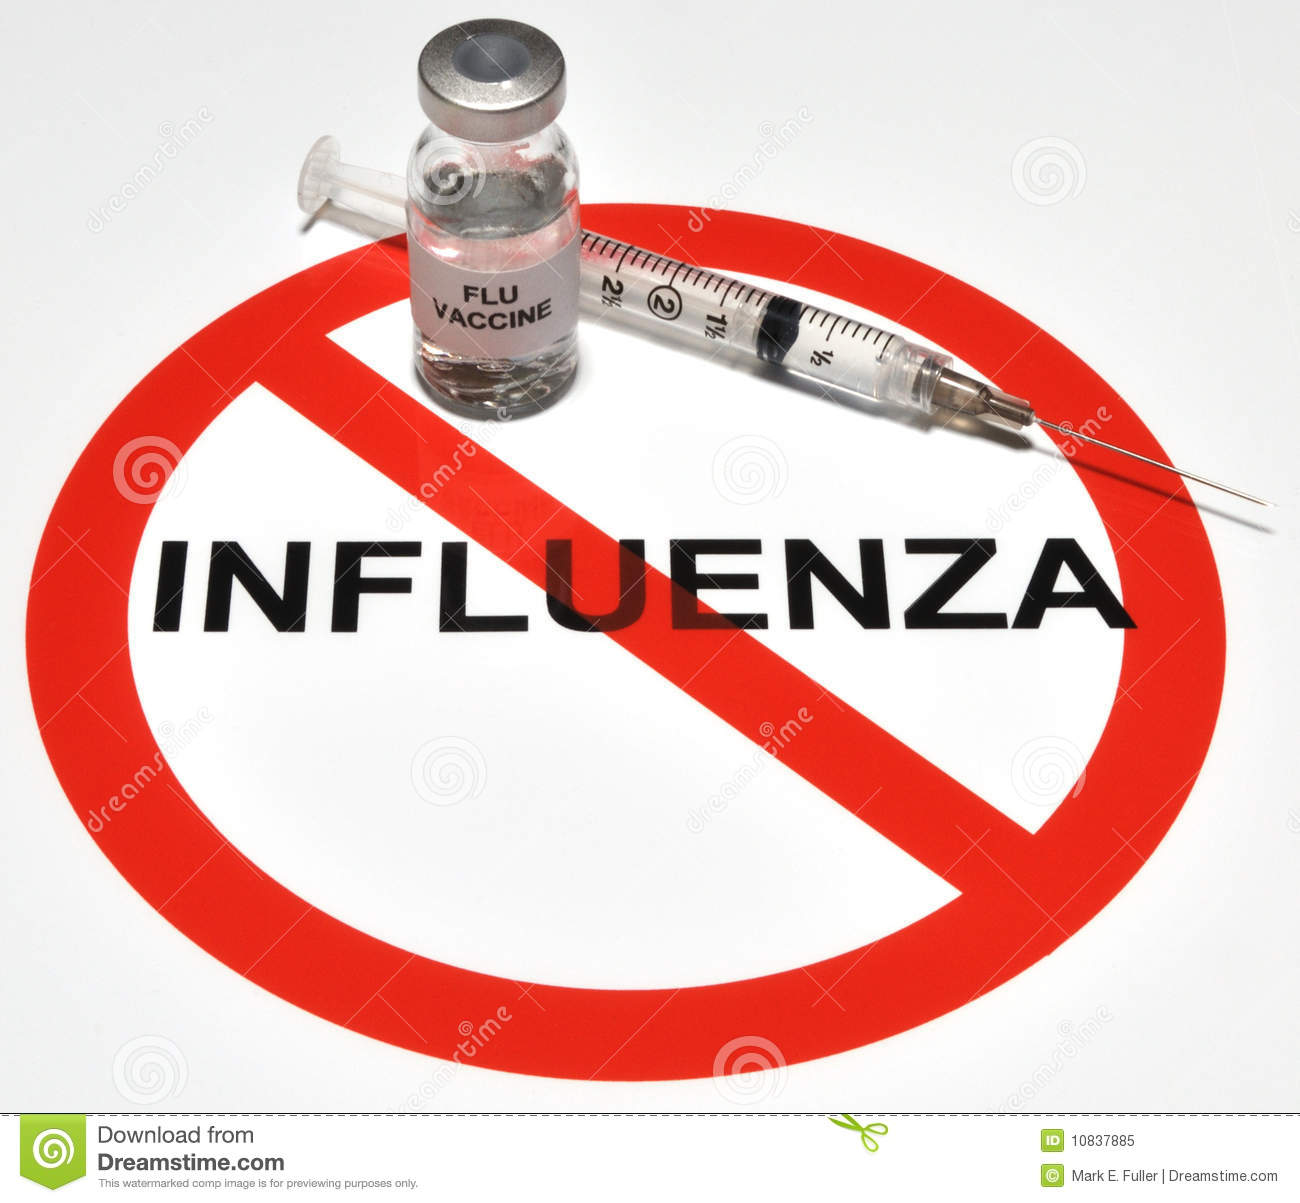 https://thumbs.dreamstime.com/z/influenza-vaccine-10837885.jpg